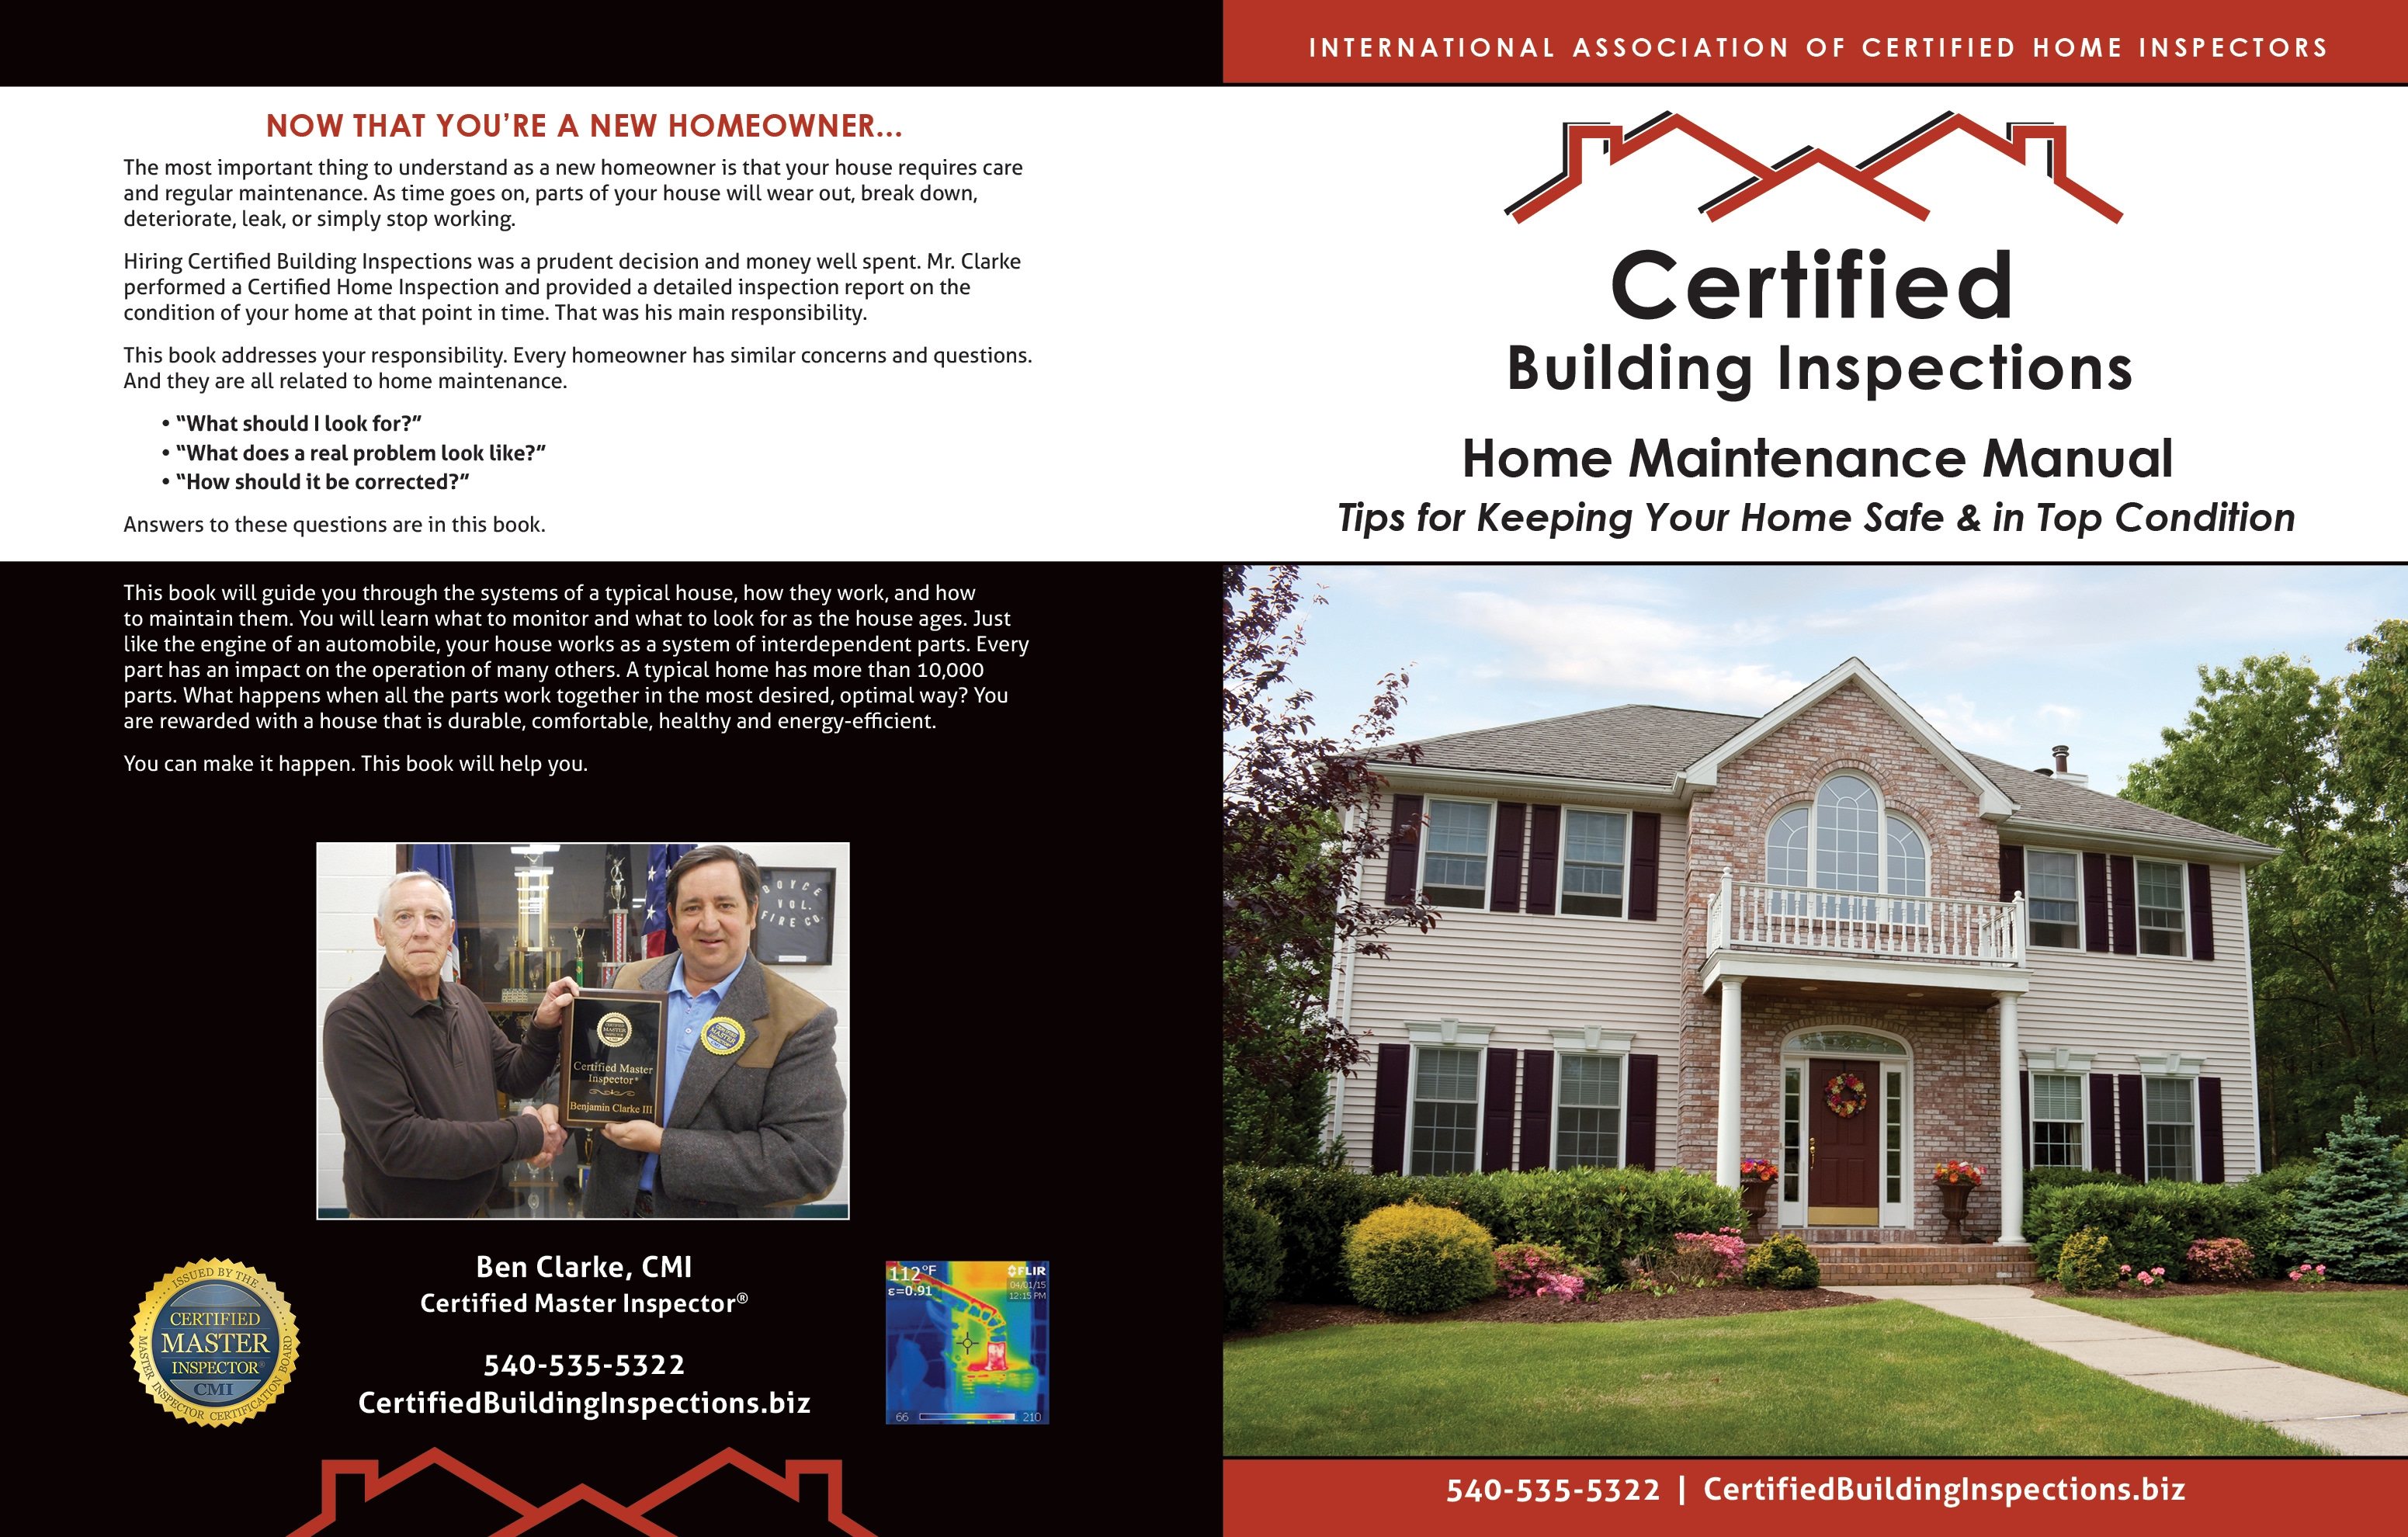 custom home maintenance book for certified building inspections - inspection gallery